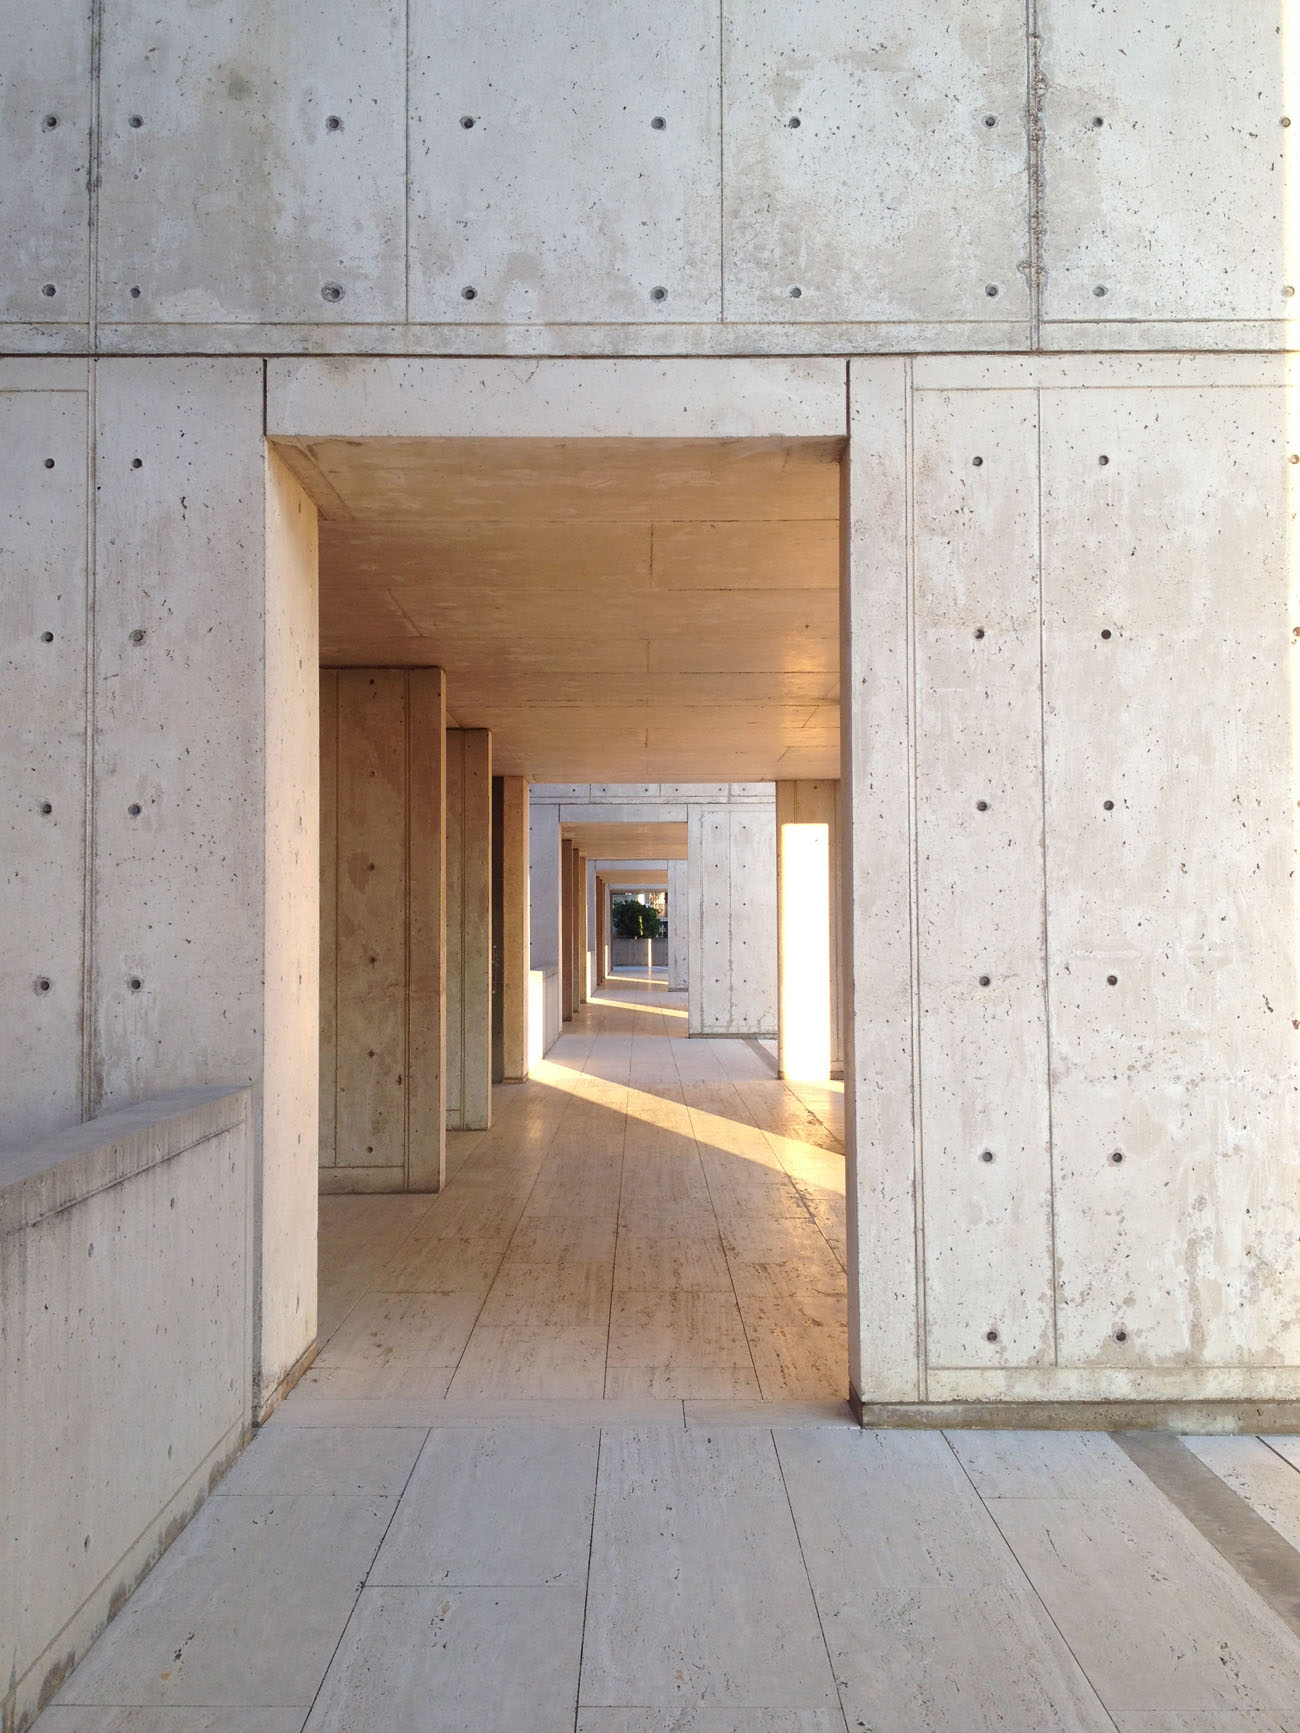 The arcade at the Salk Institue